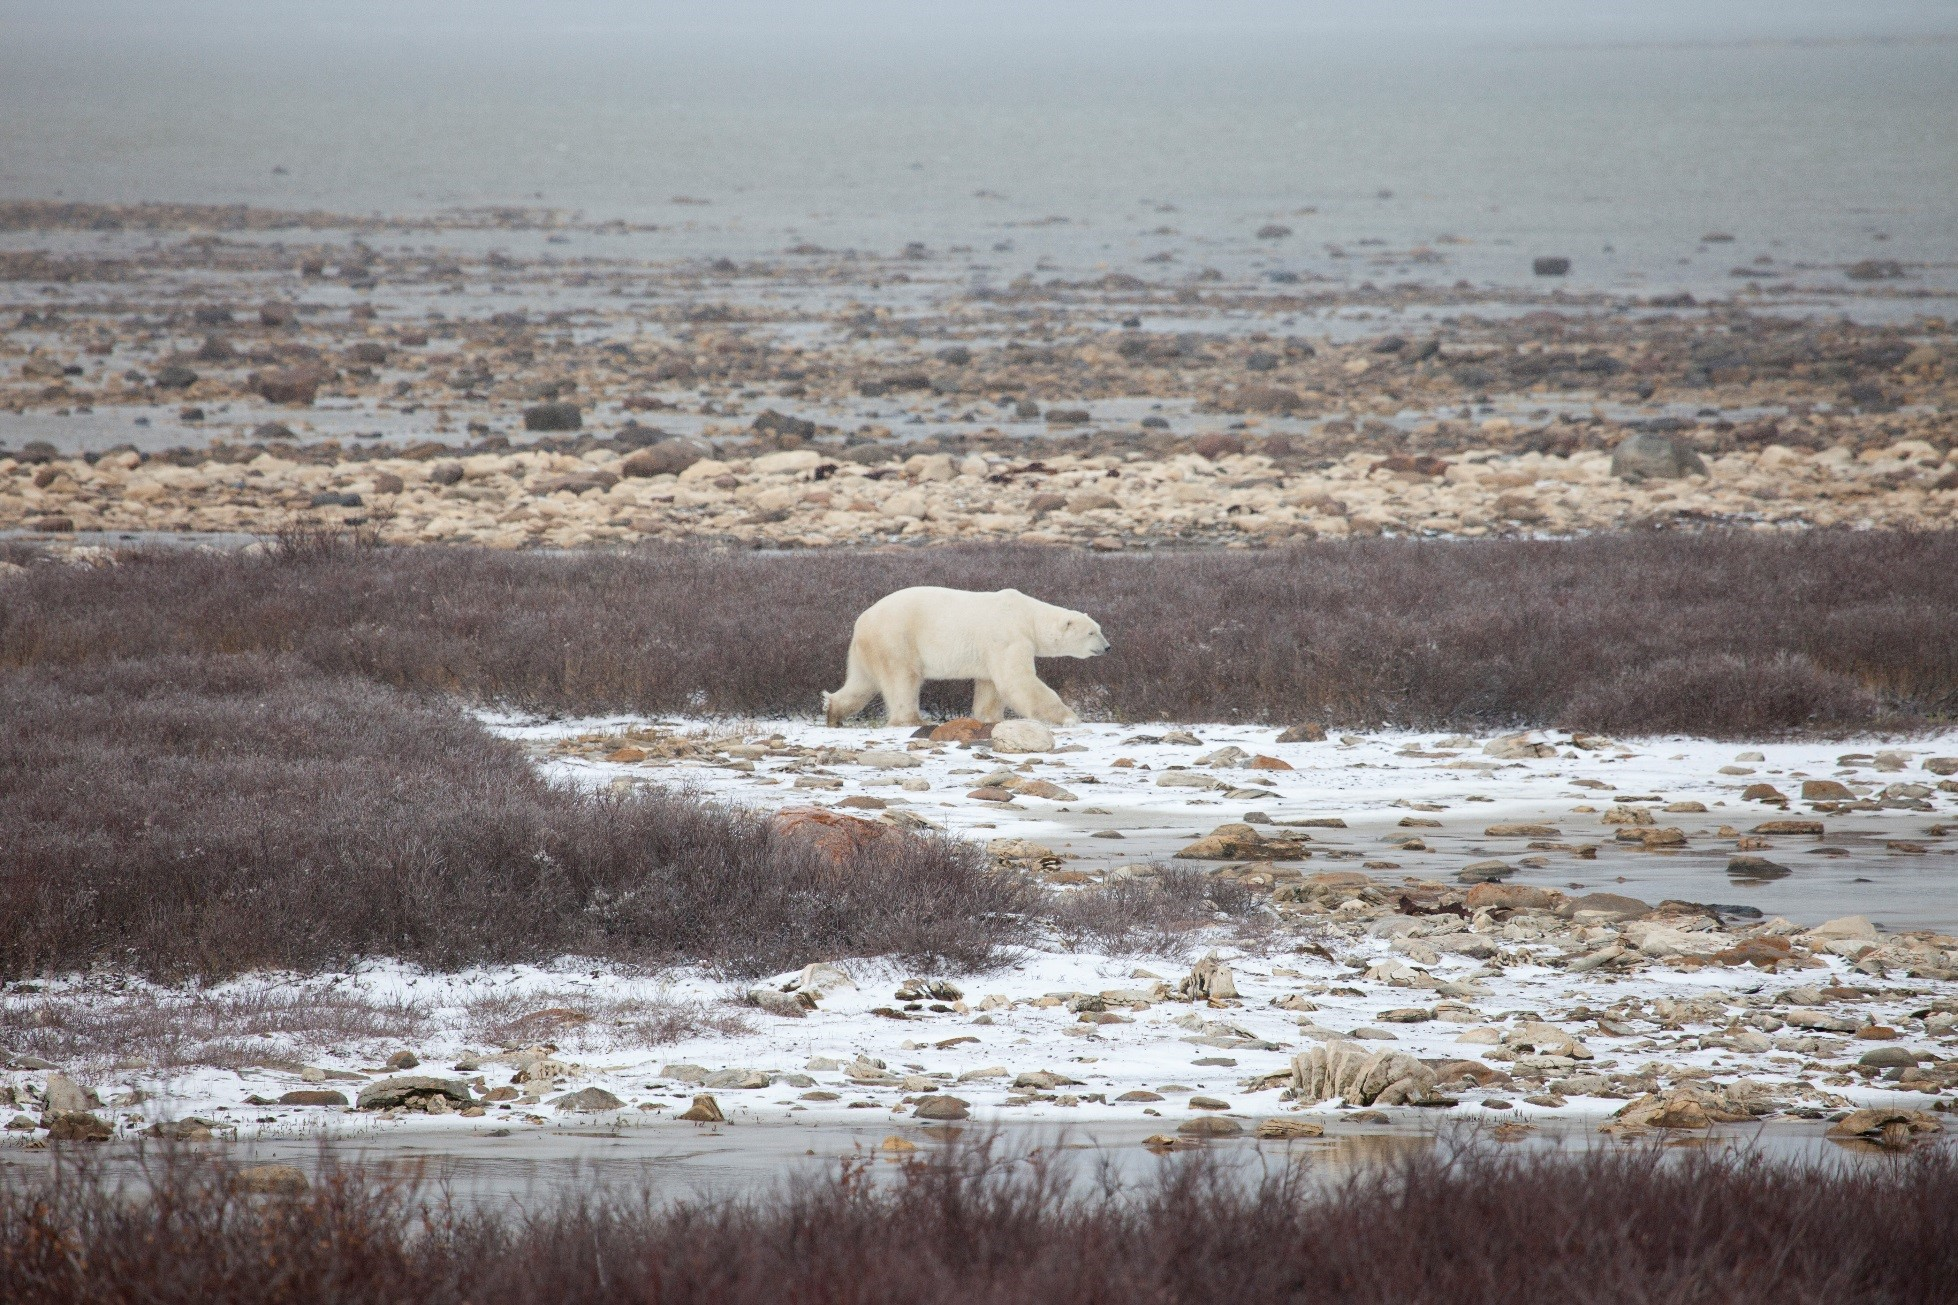 a large male polar bear walking between snowy tundra and red willow bushes